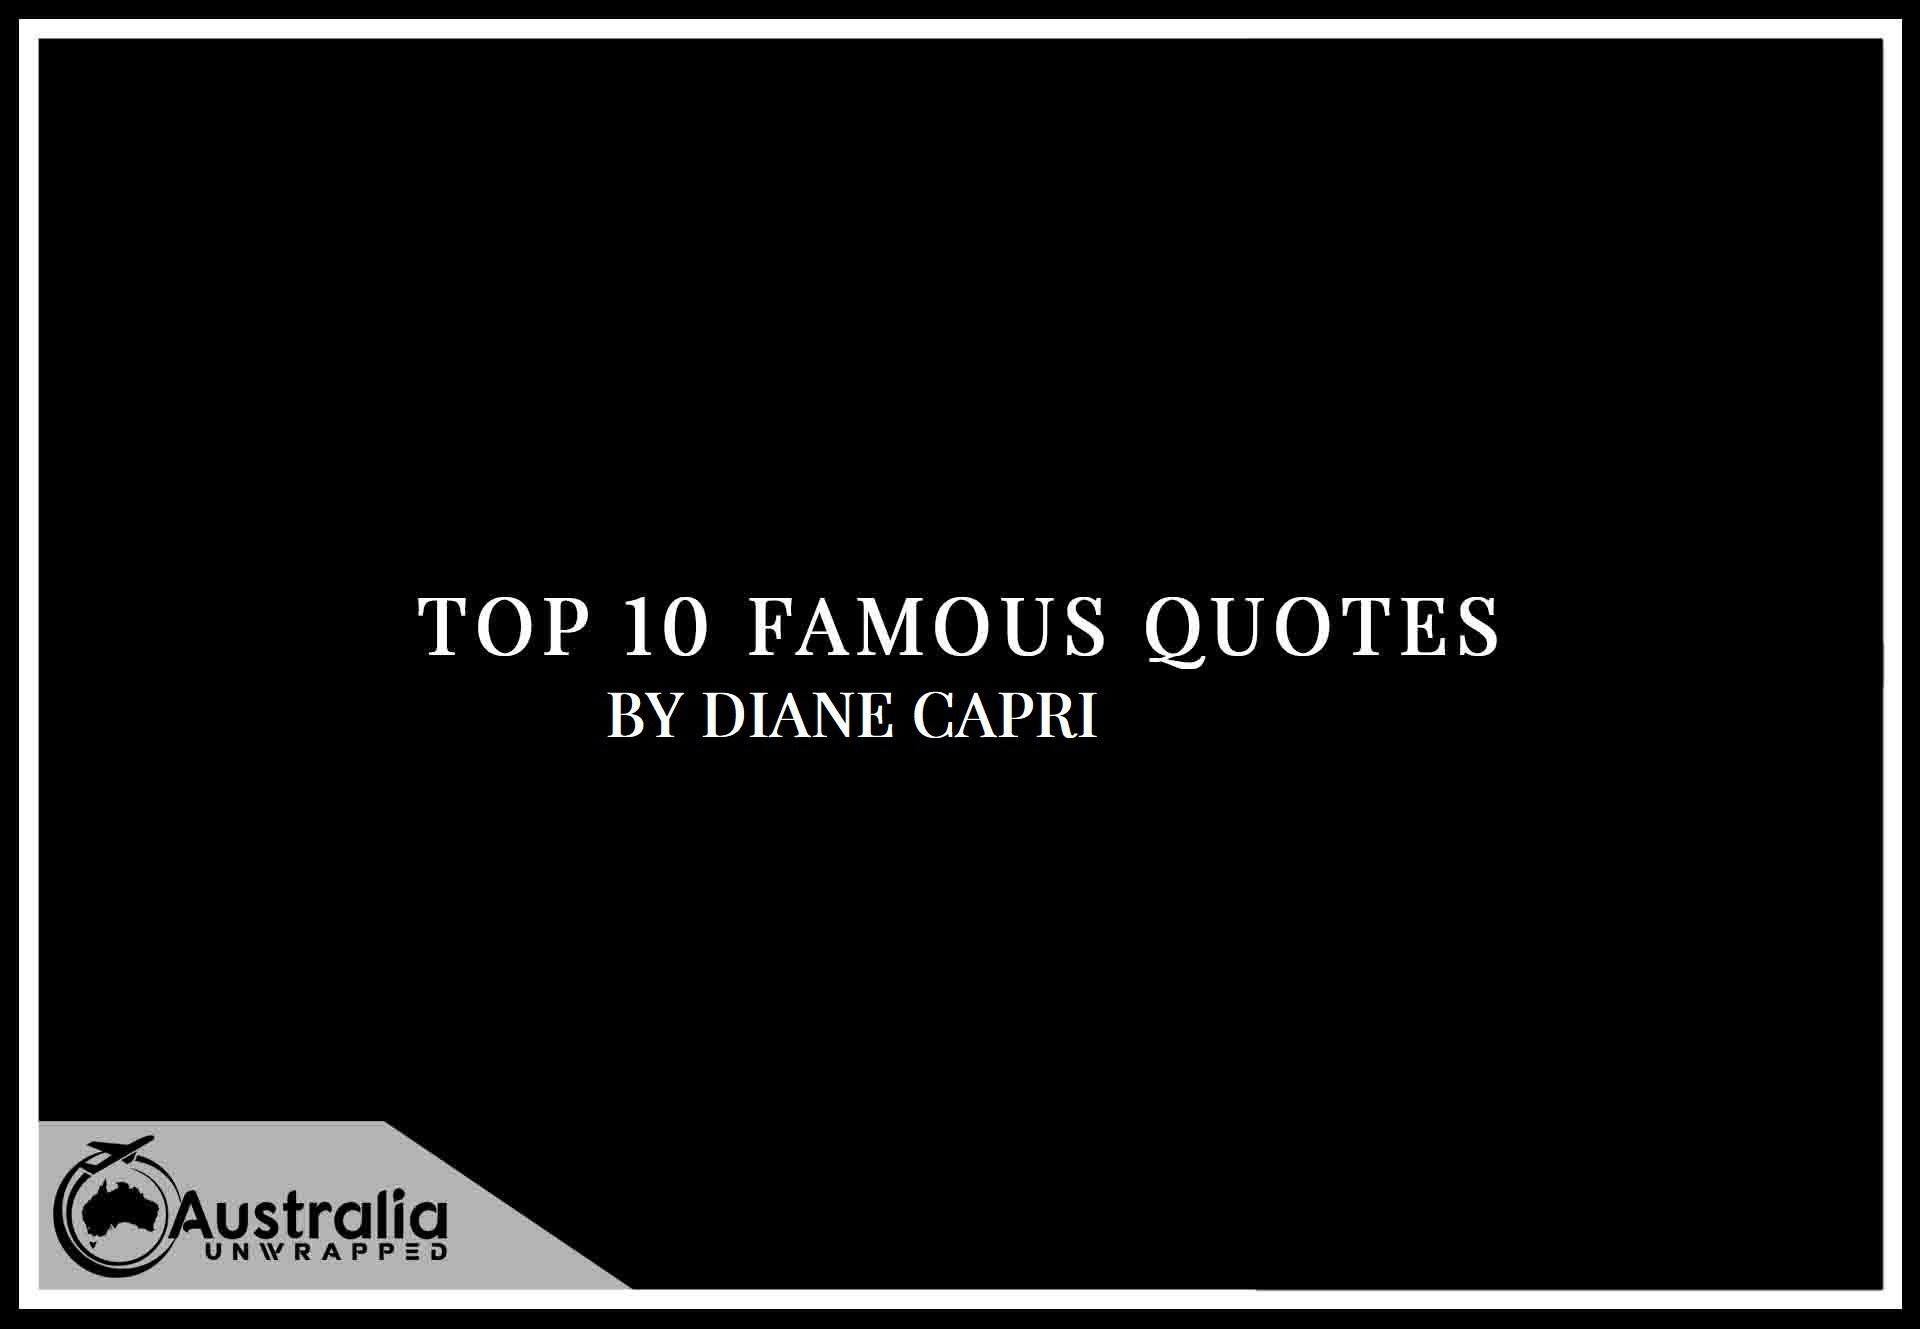 Top 10 Famous Quotes by Author Diane Capri